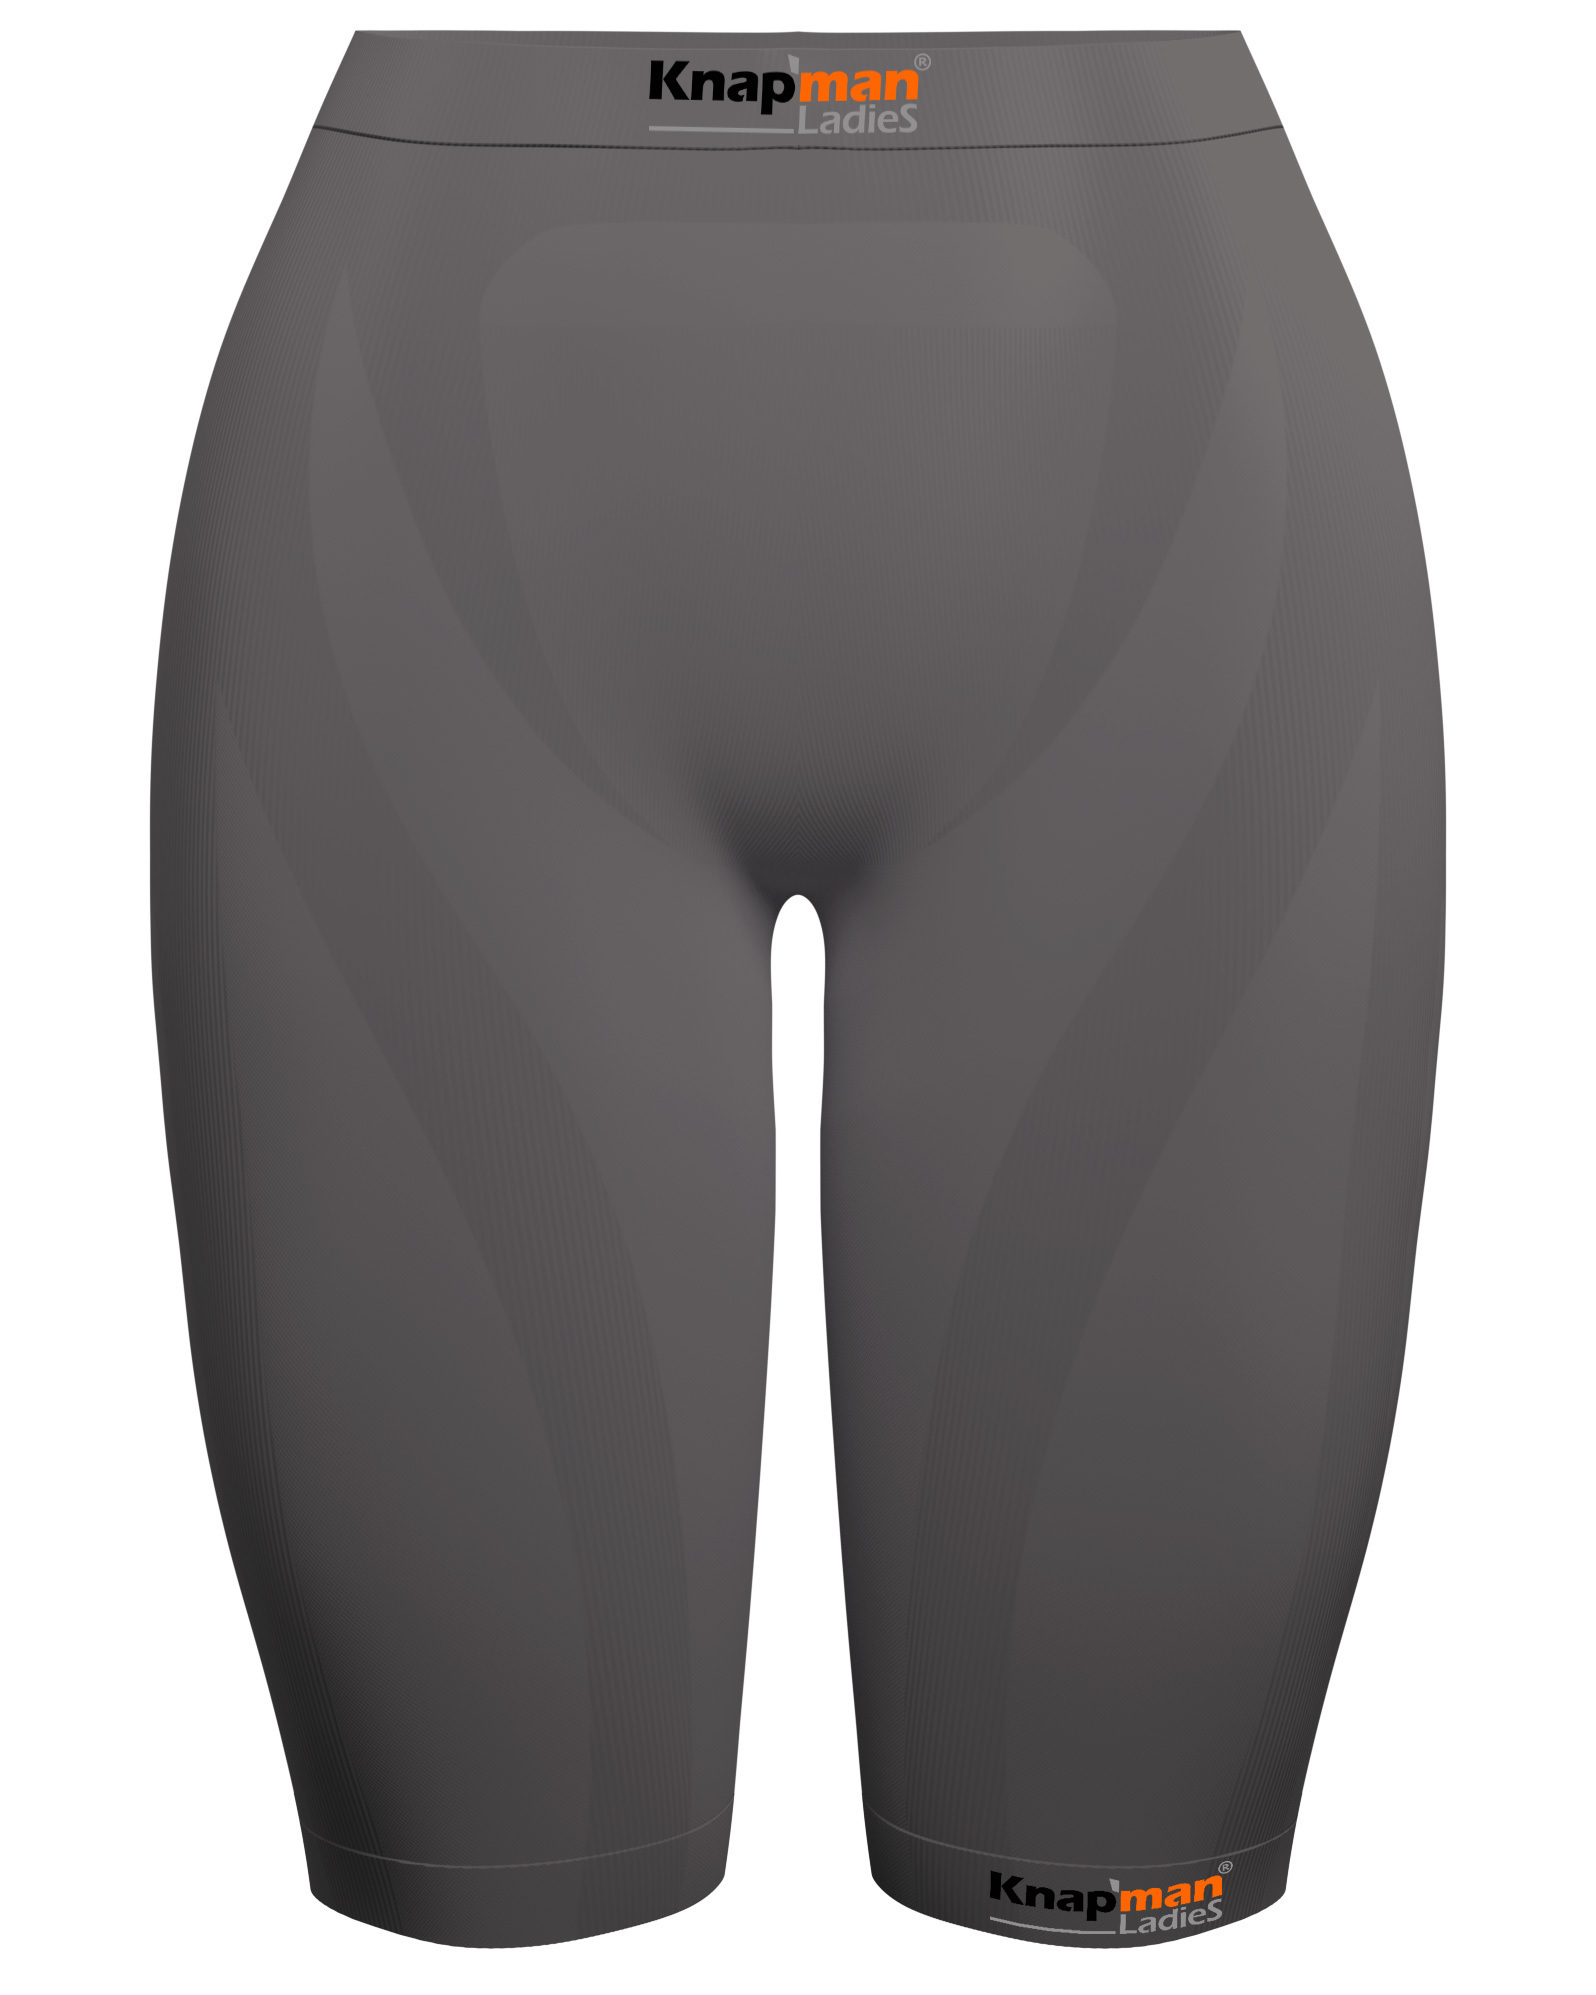 Knap'man Ladies Zoned Compression Short 45% grey